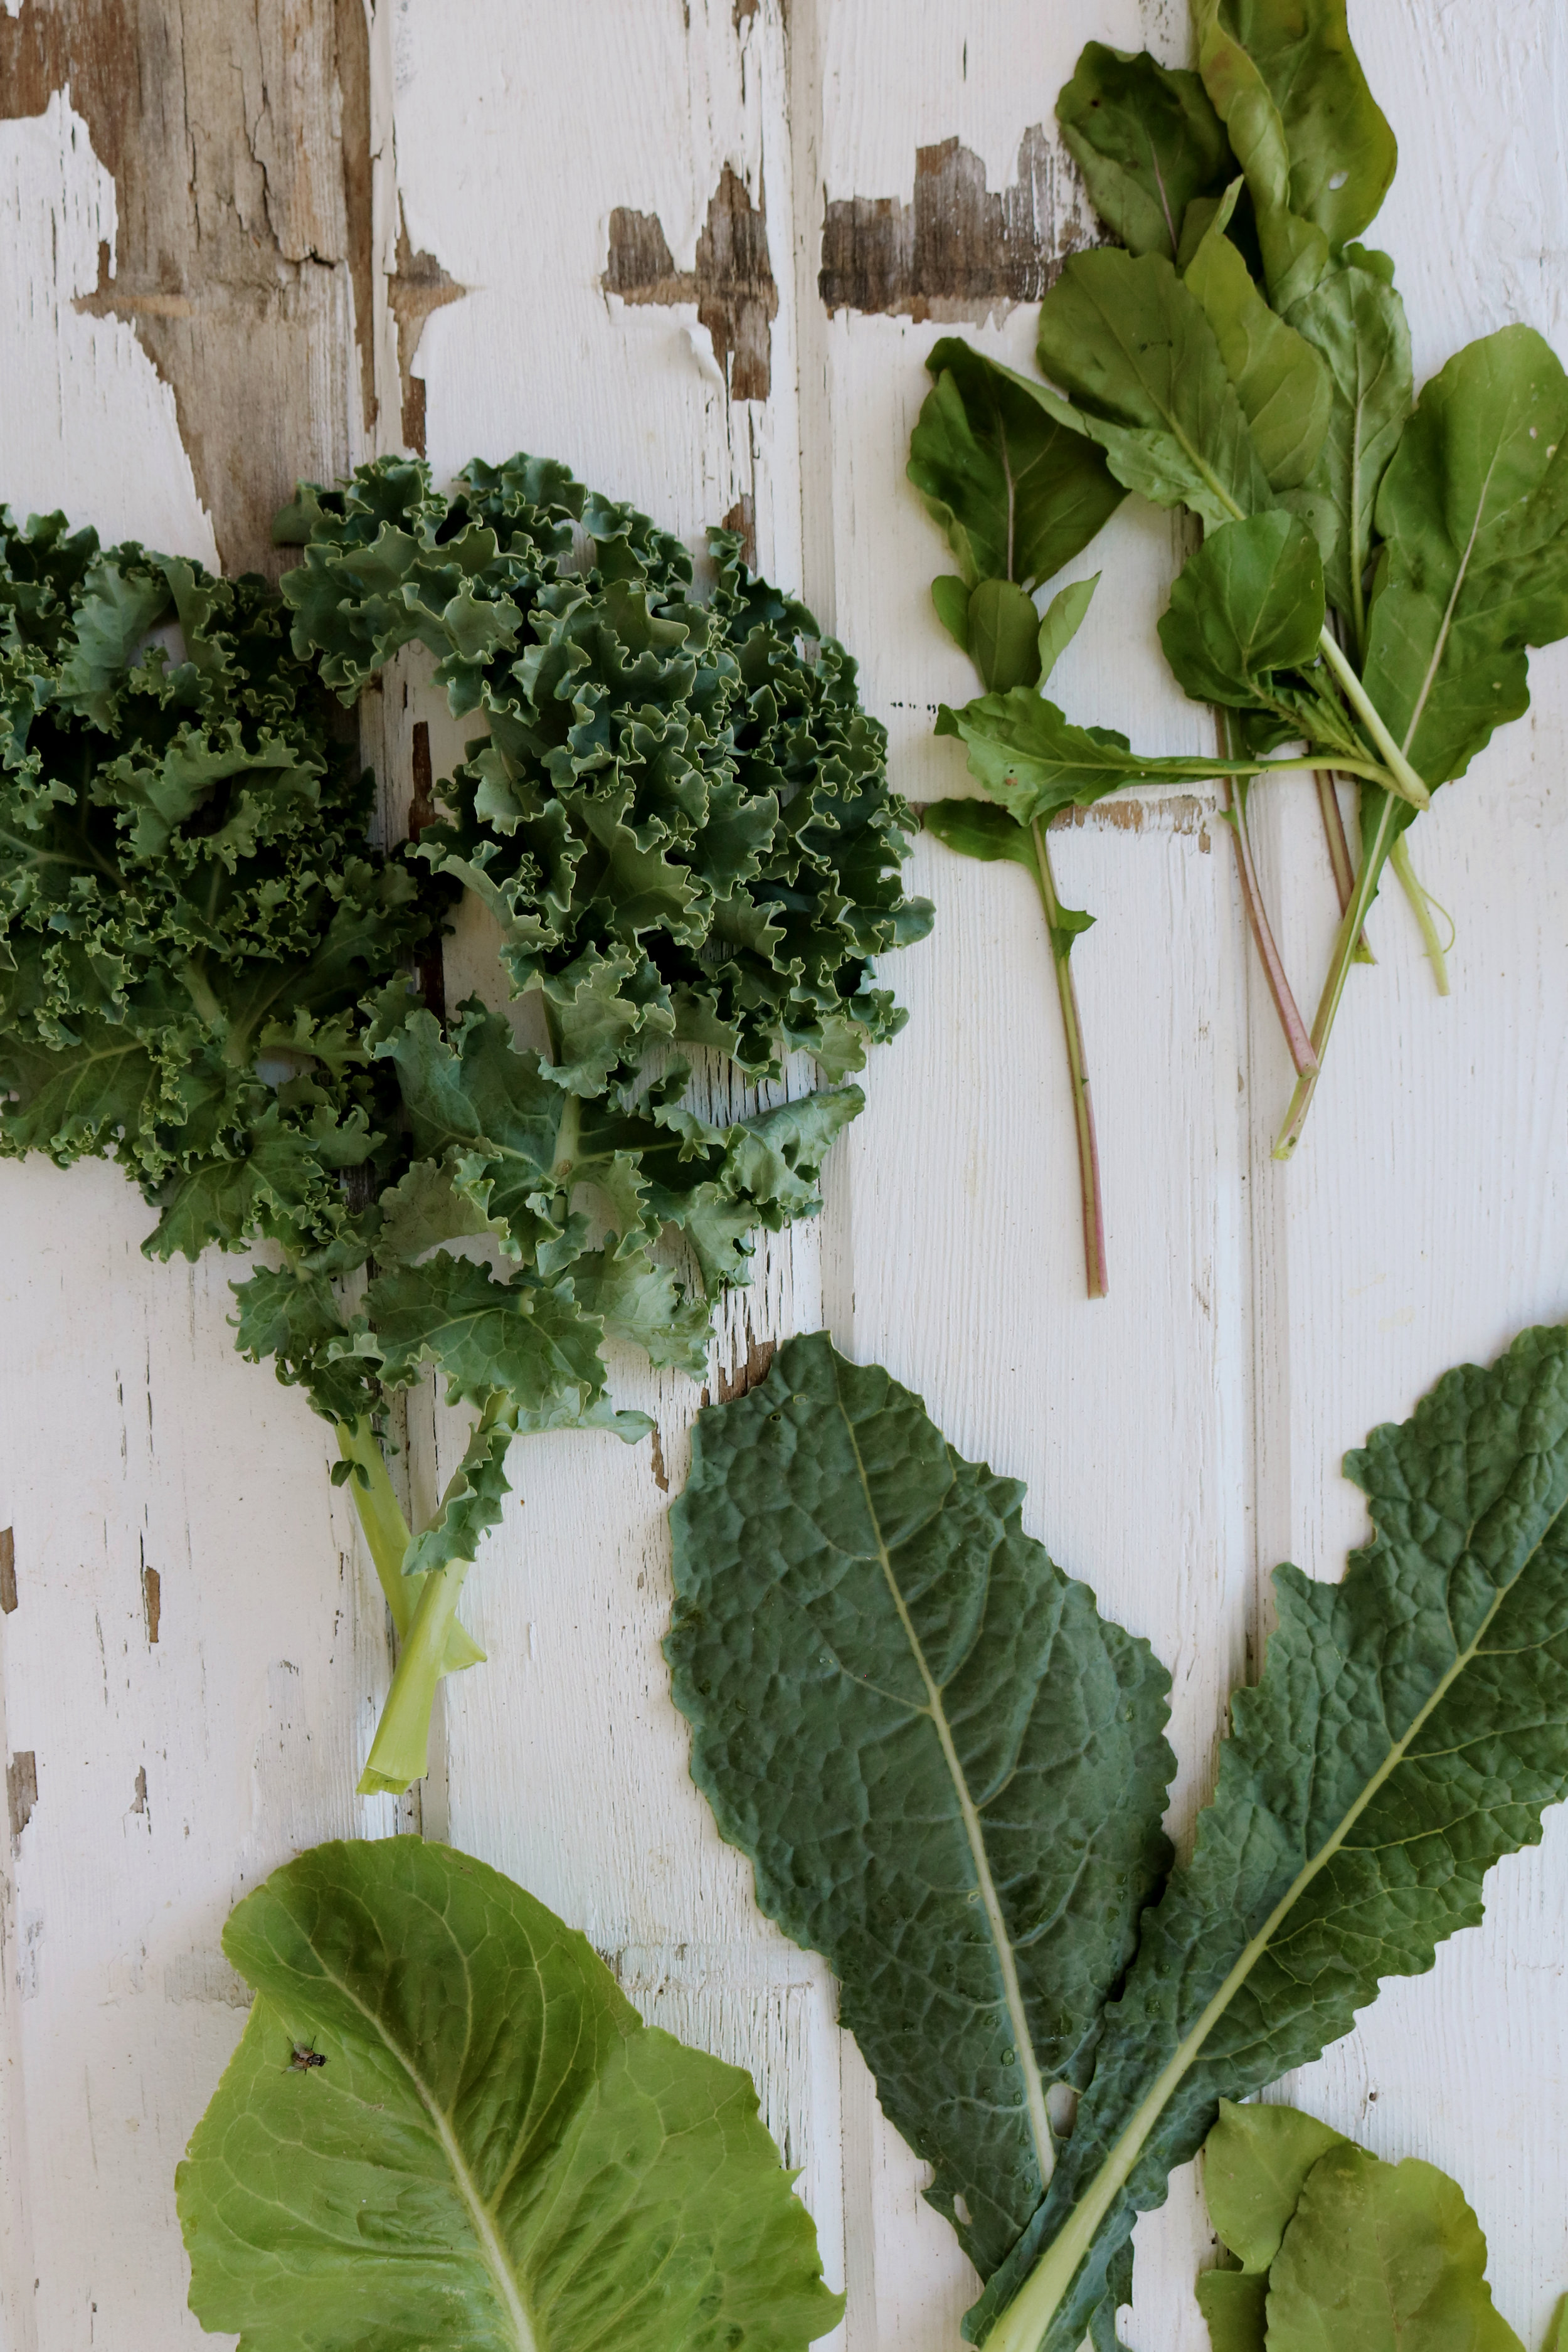 My Favorite Mixed Greens to Grow for Salads